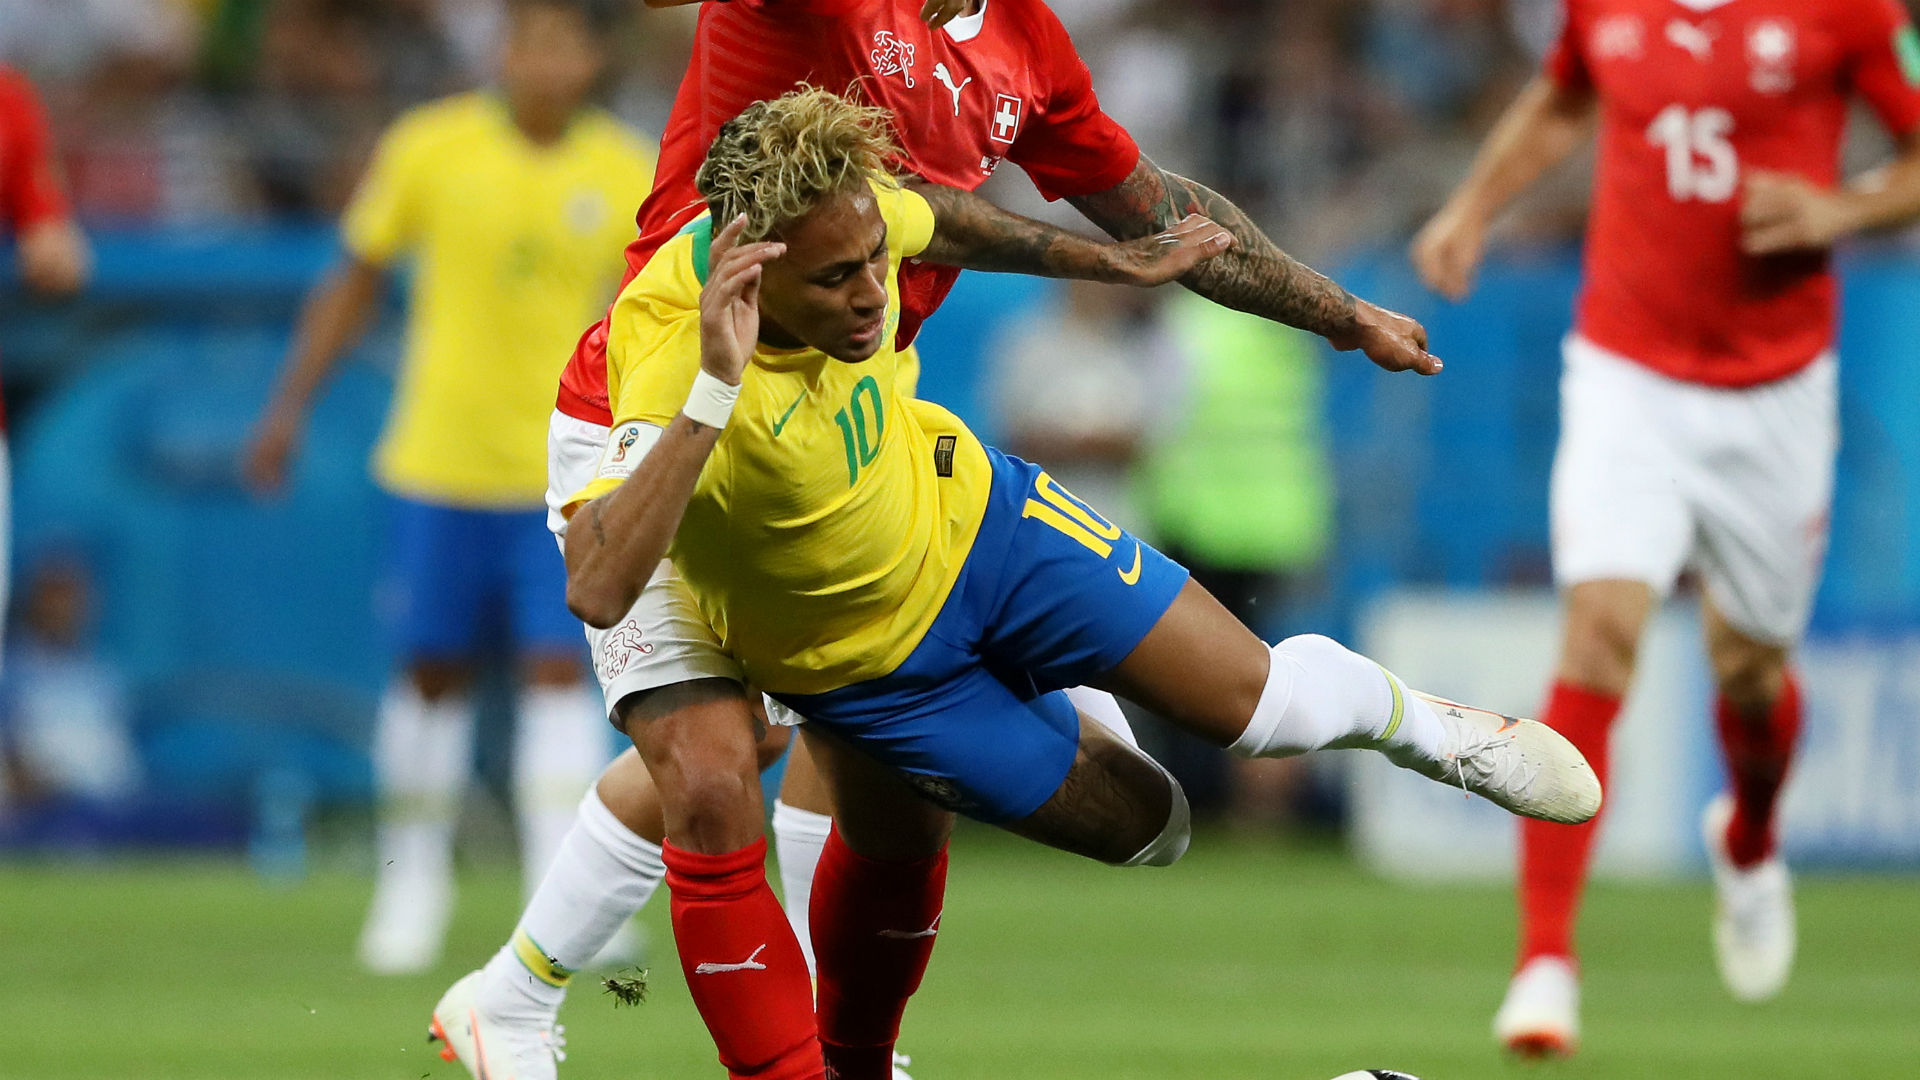 Brazil beat Costa Rica 2-0, edge towards World Cup last 16